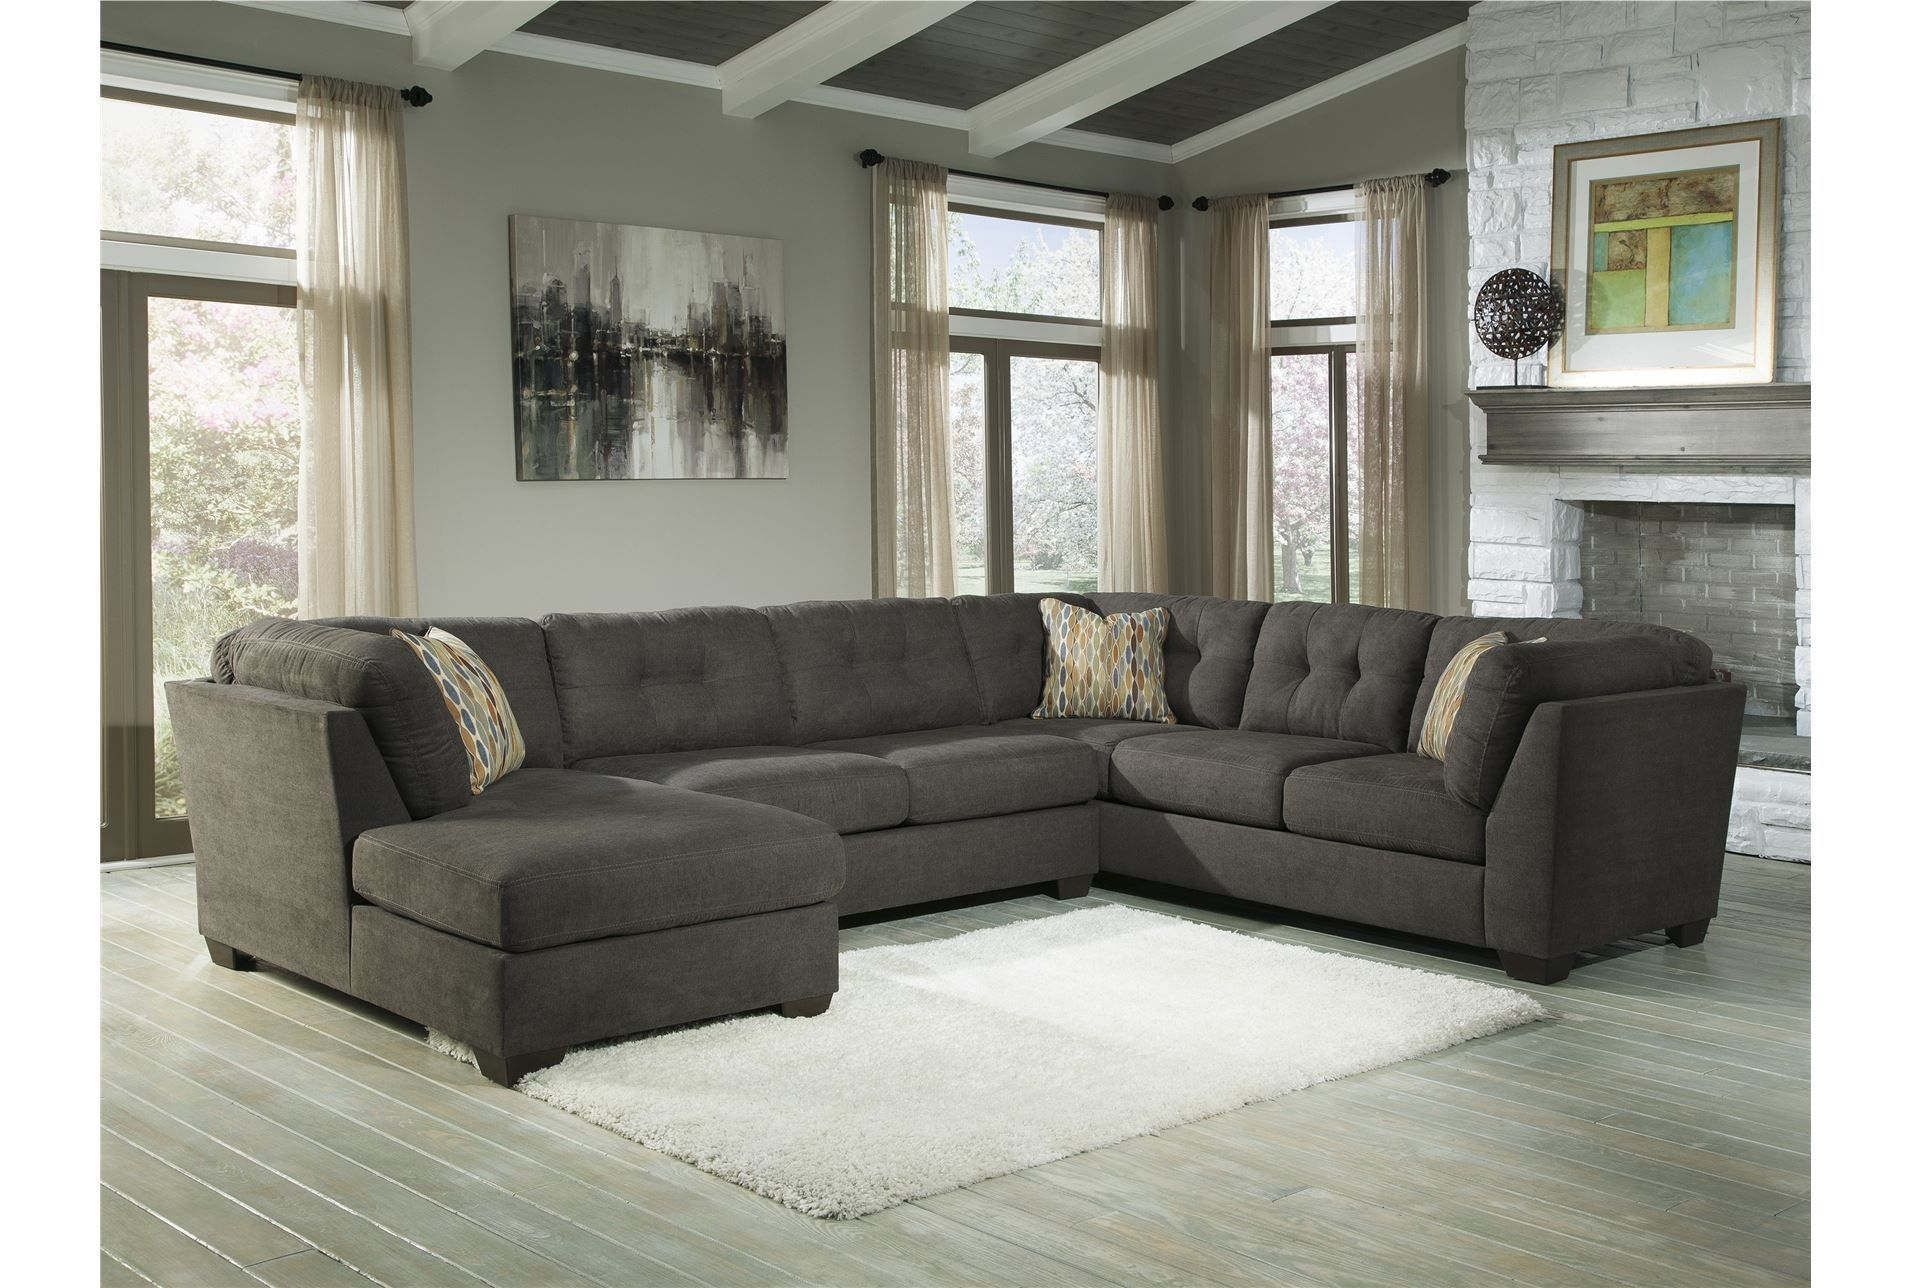 Delta City Steel 3 Piece Sectional W/laf Chaise- Living Room Option for Karen 3 Piece Sectionals (Image 10 of 30)